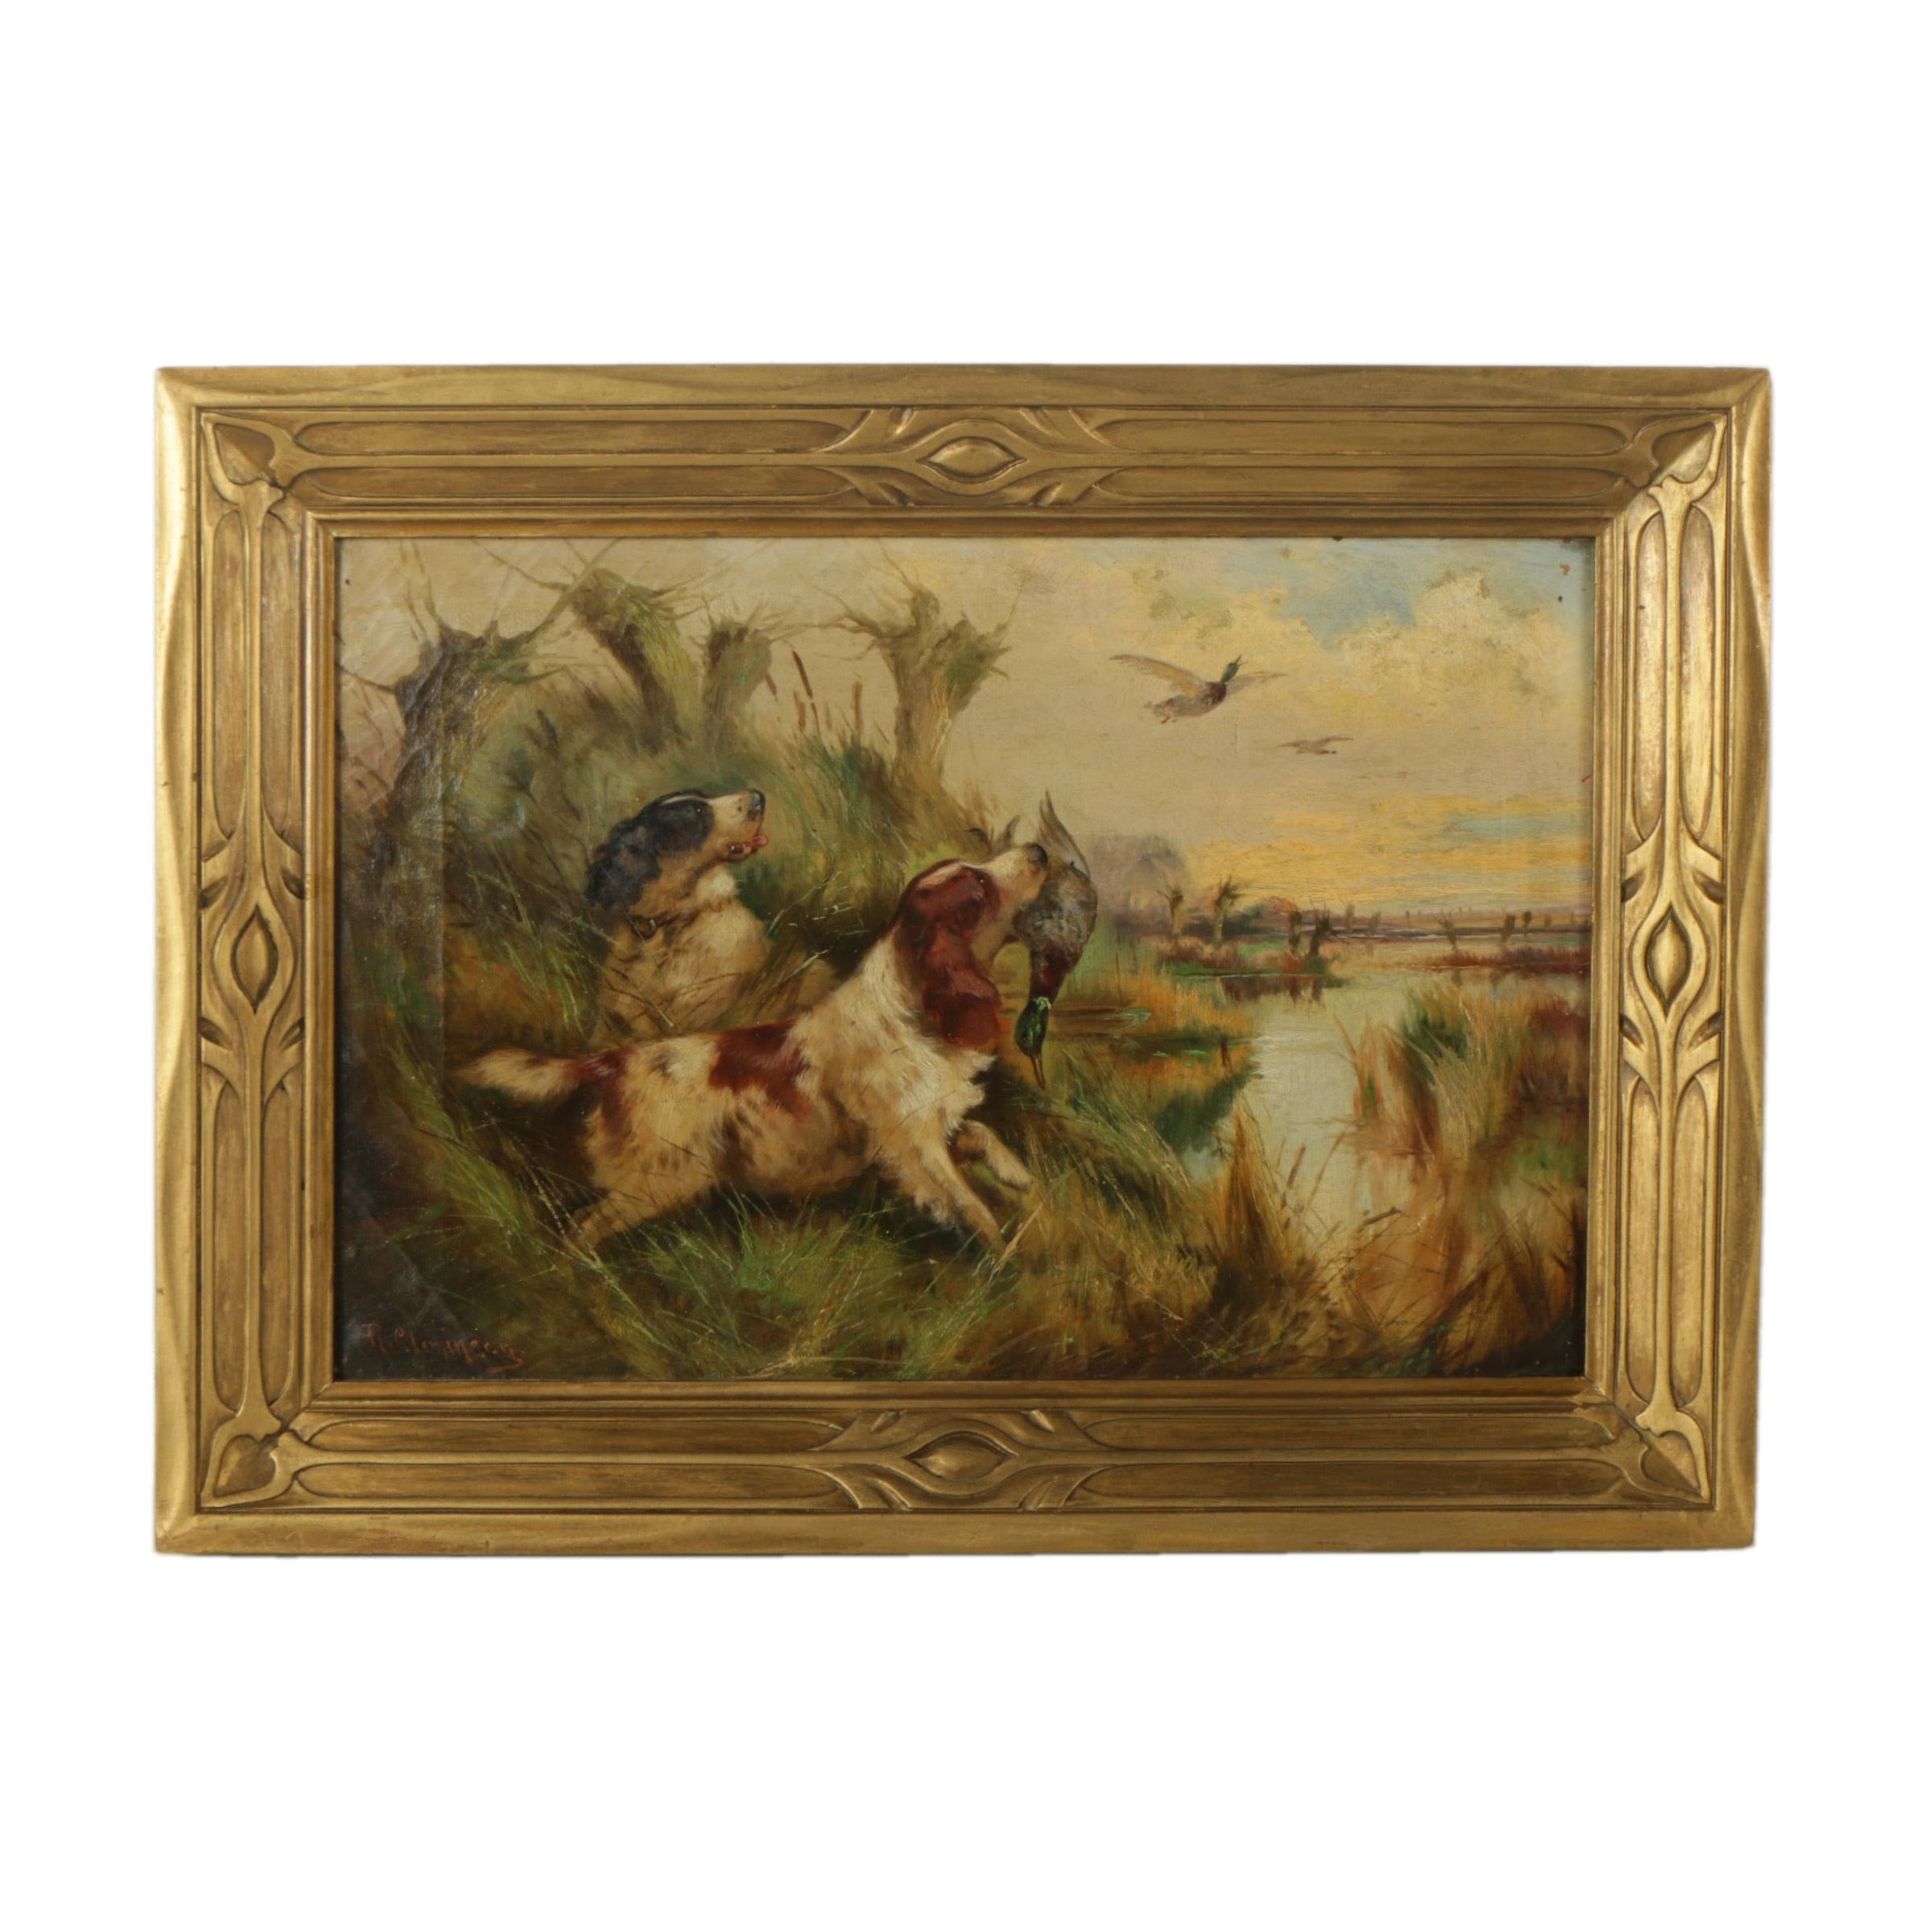 Robert Cleminson Oil Painting on Canvas of Hunting Dogs